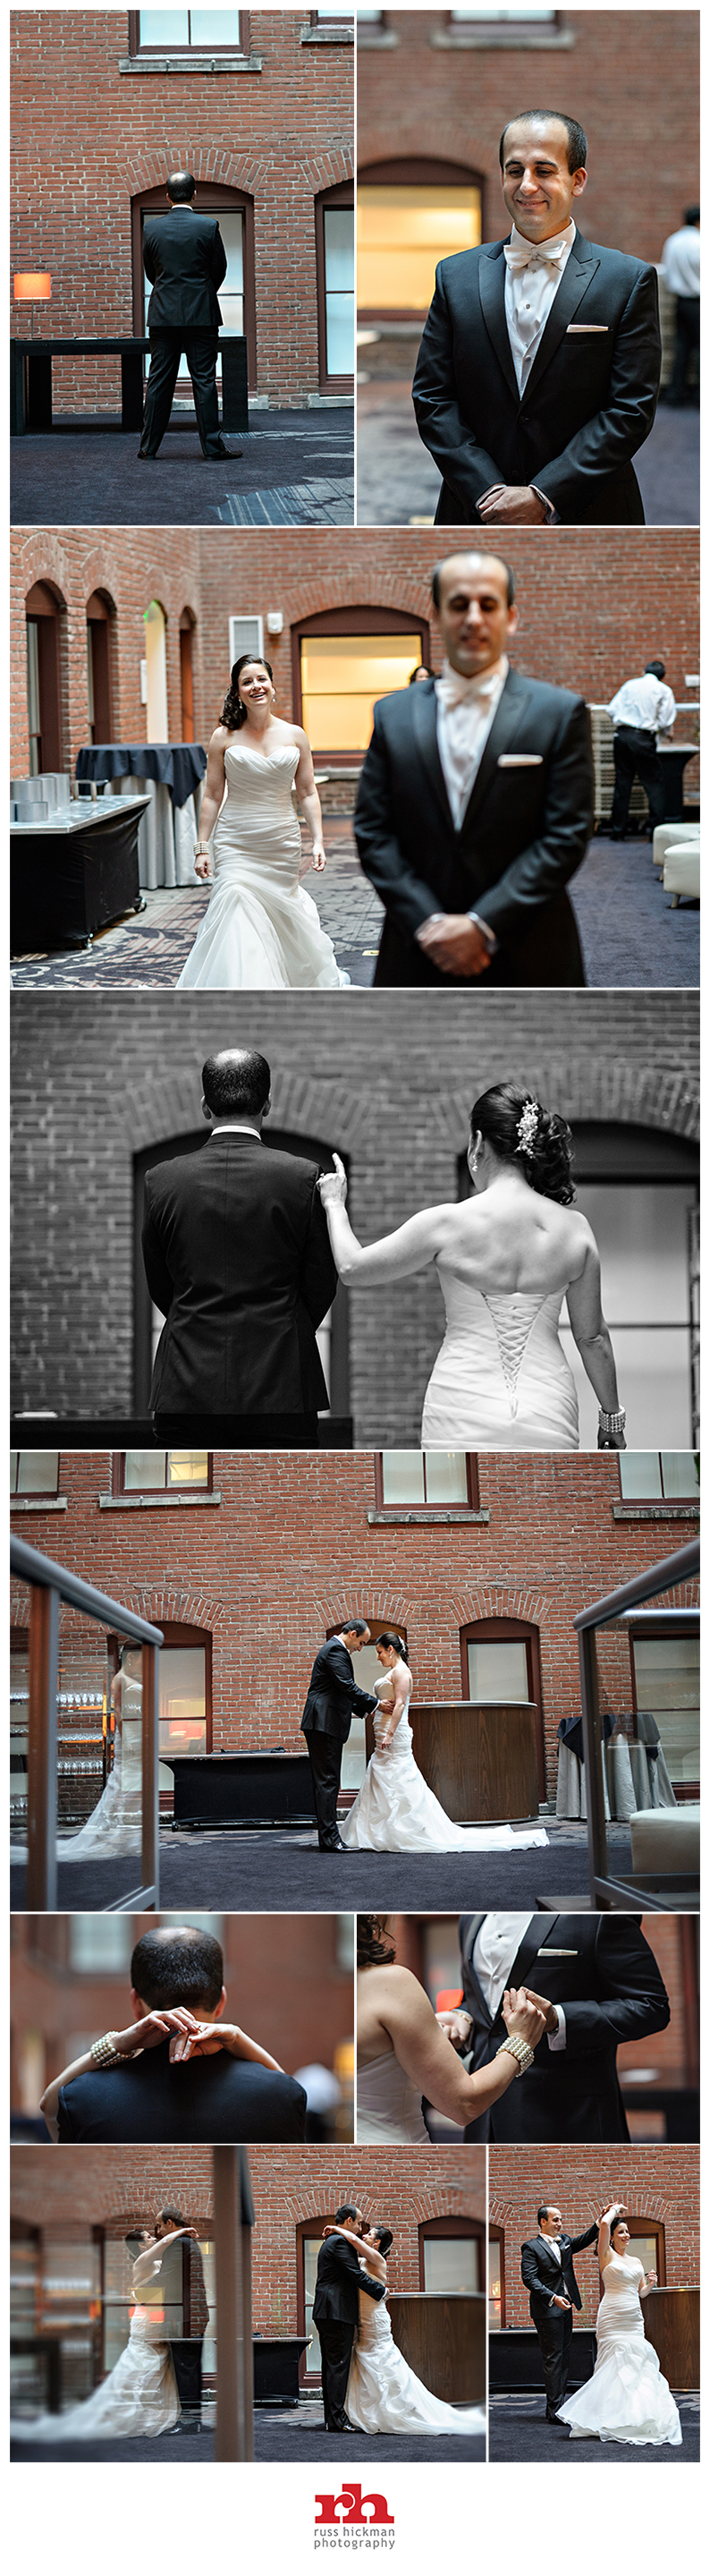 Philadelphia Wedding Photographer JAWBlog005